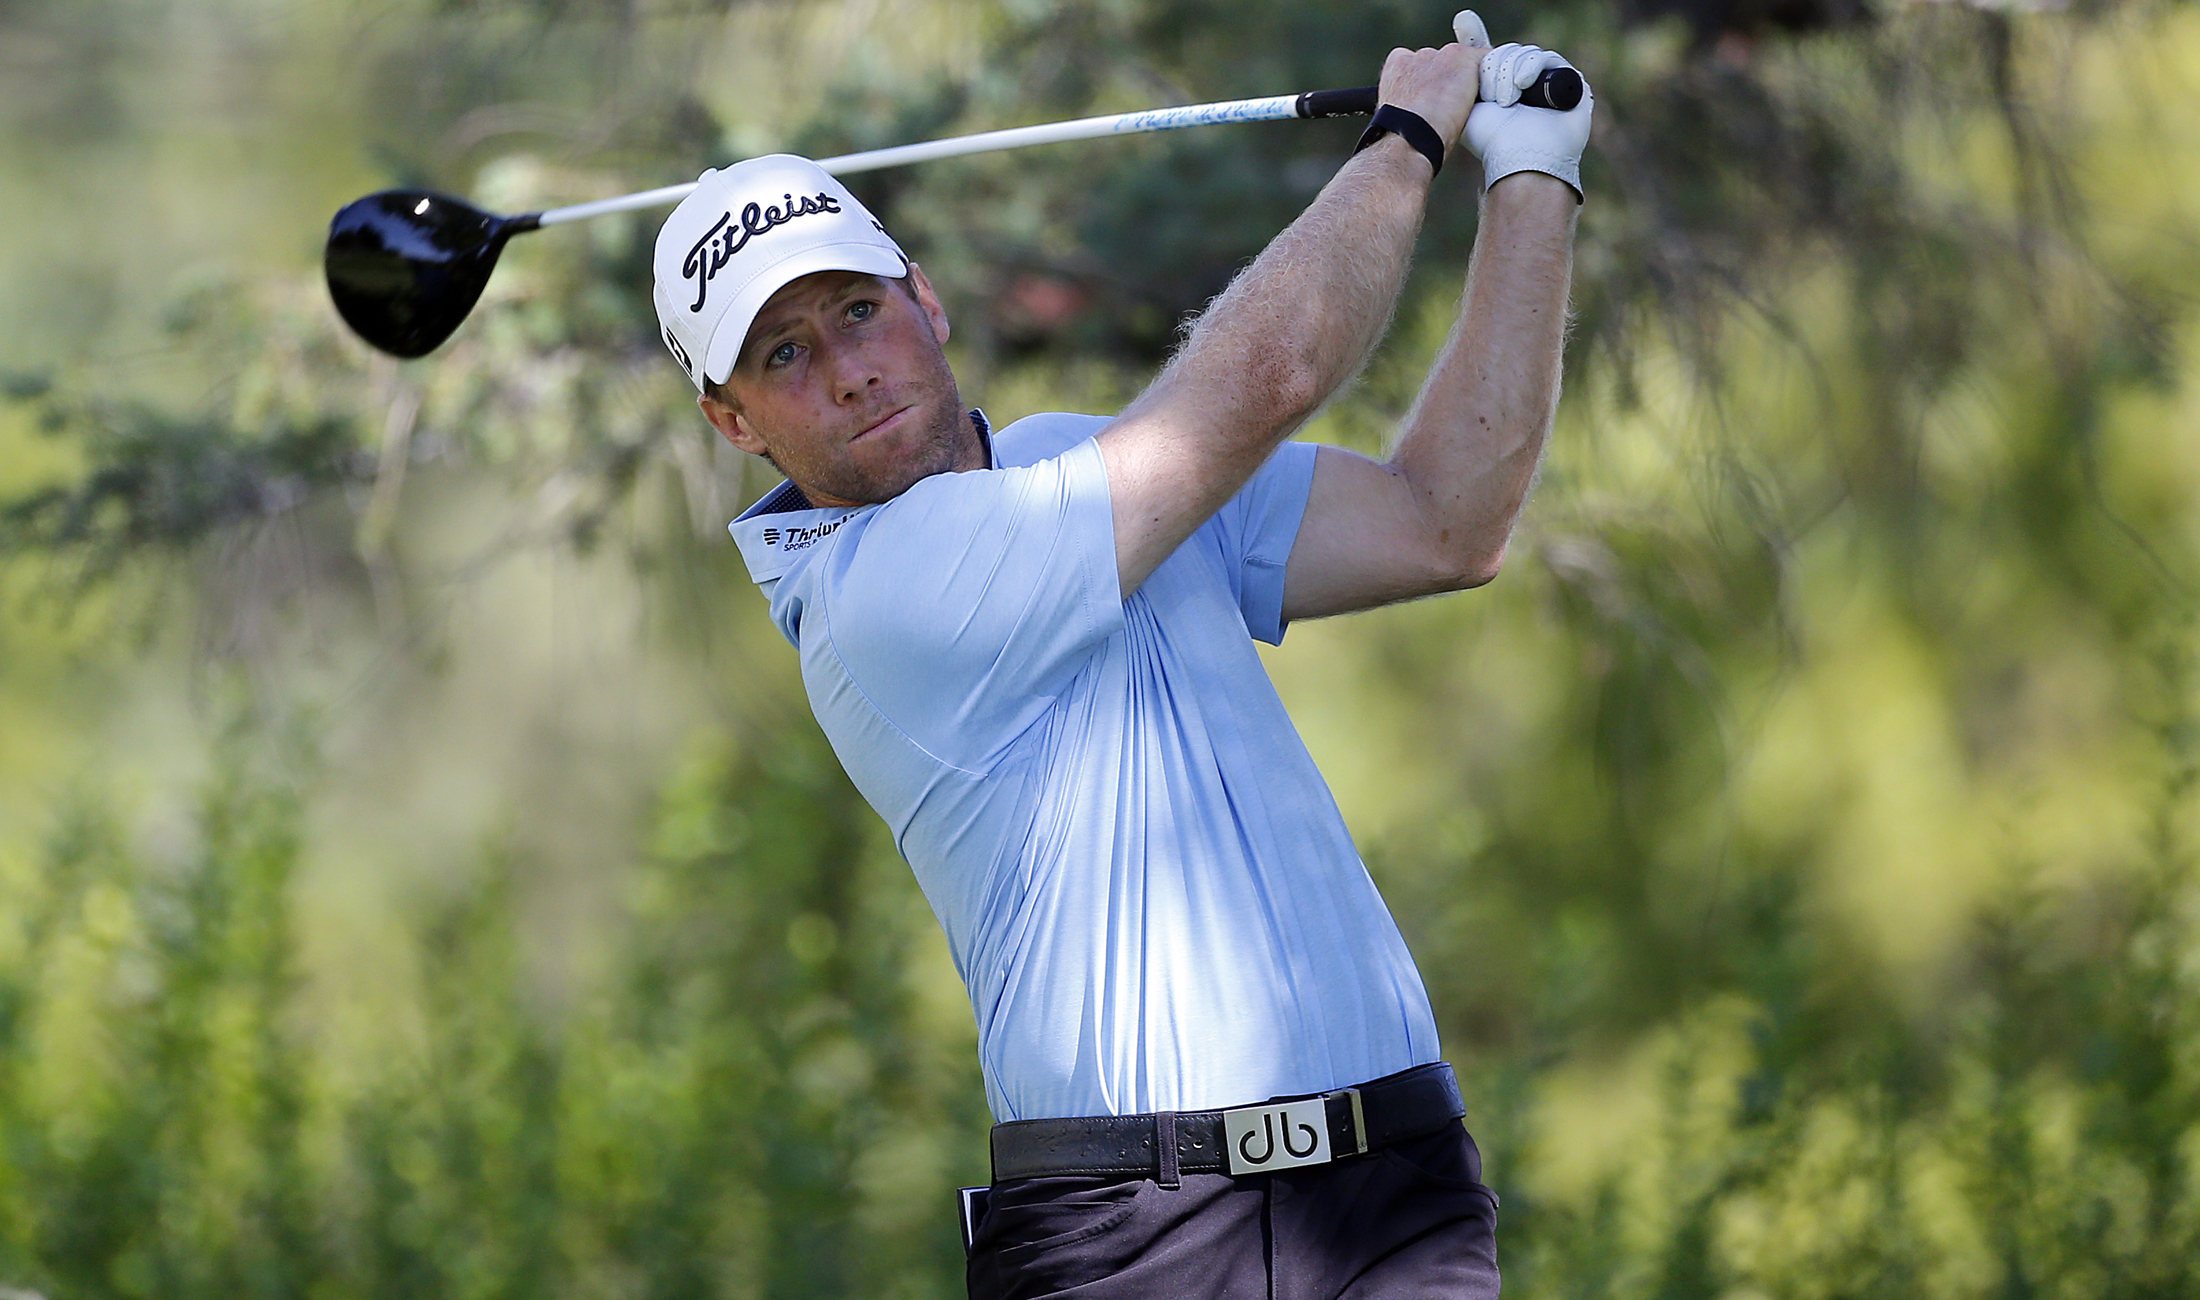 Duncan shoots 61 to lead RSM Classic